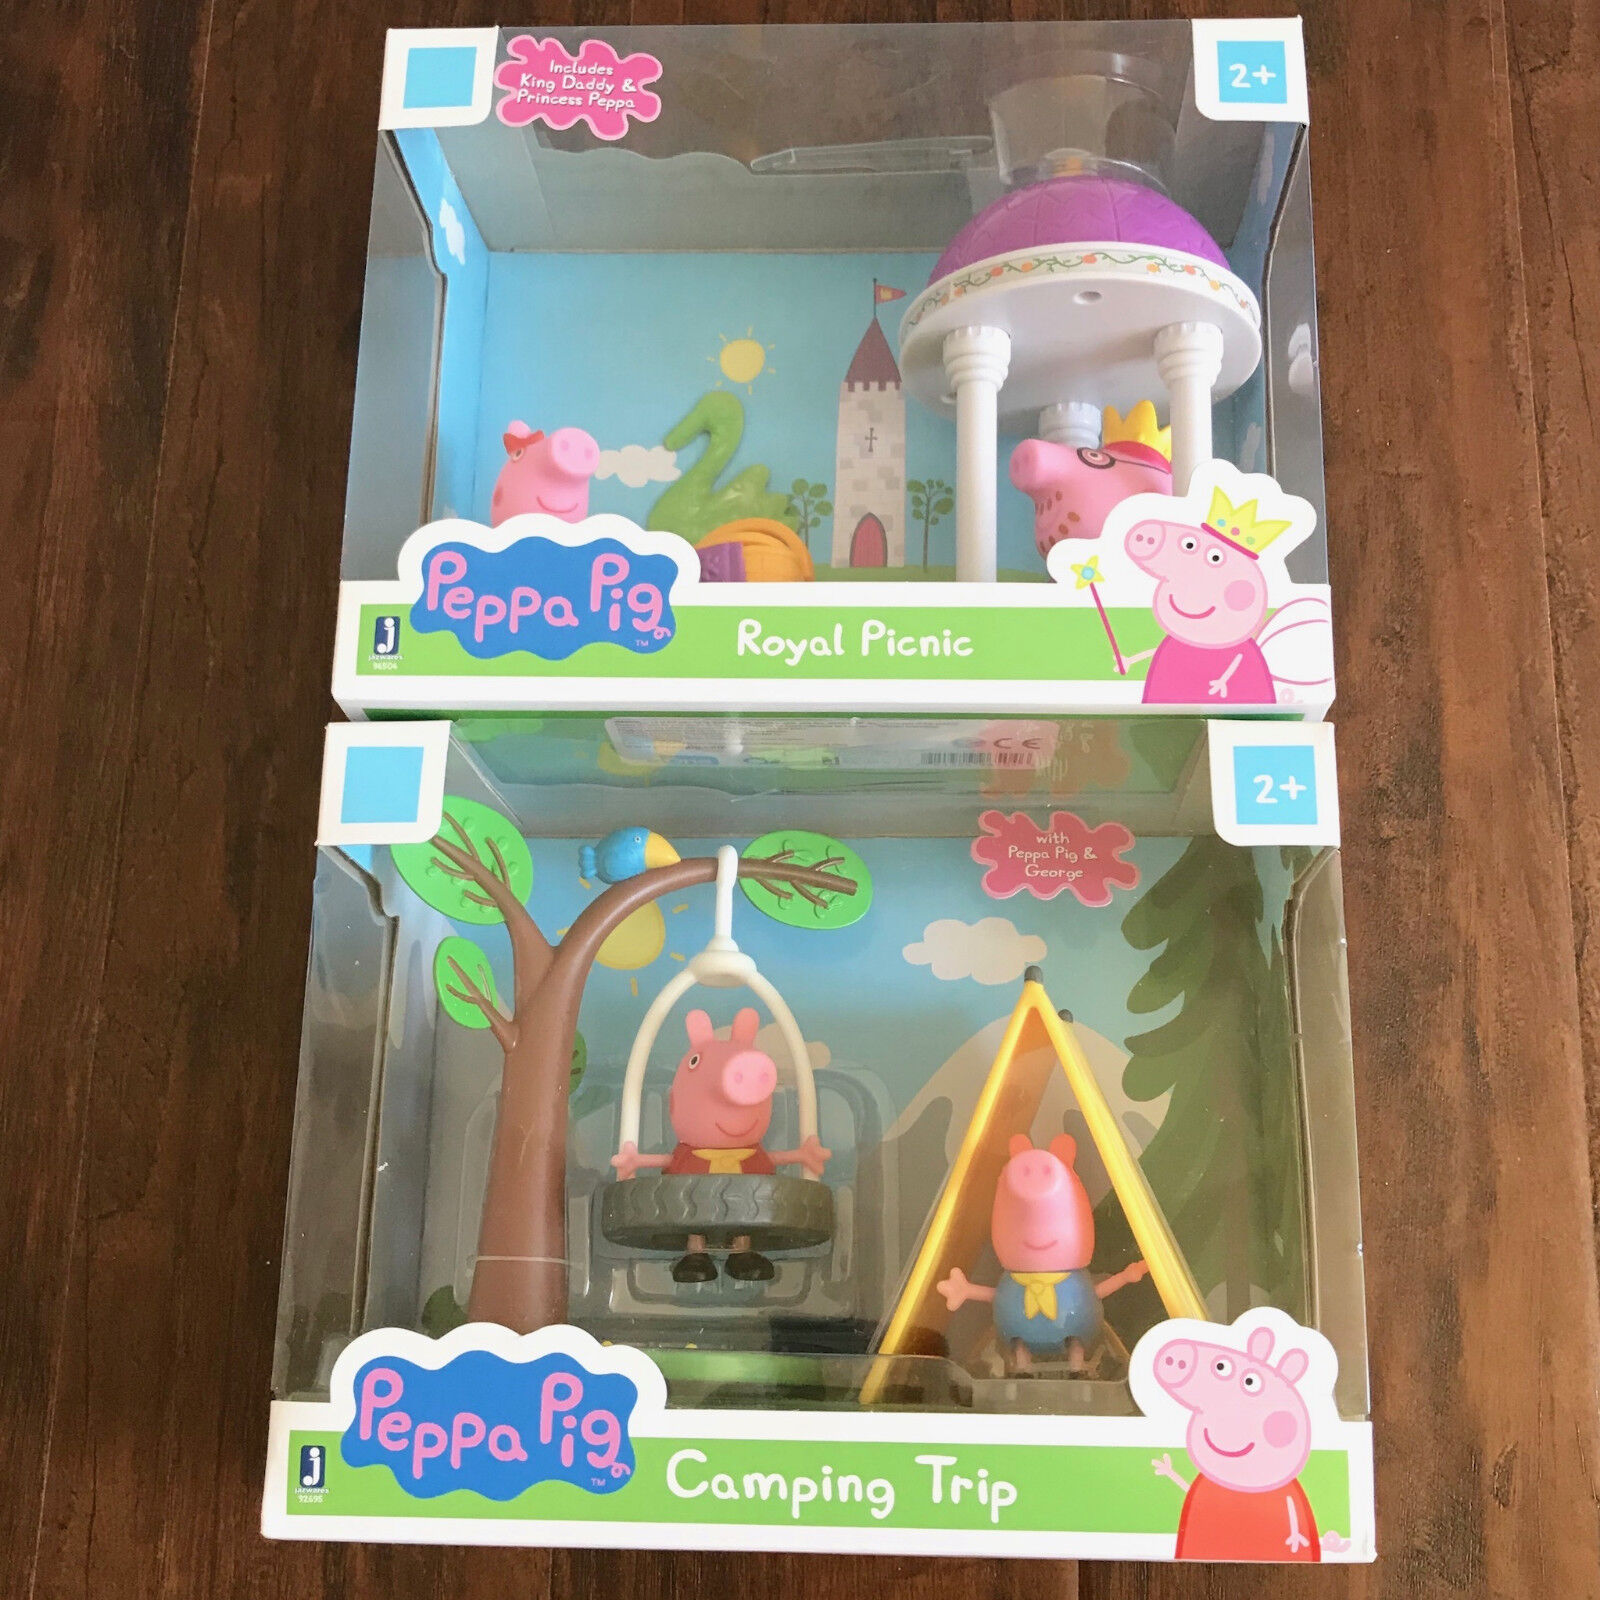 NYA OCH SEALERADE Peppa Pig spela Set - Royal Picnic & Camping Trip (Lot of 2)